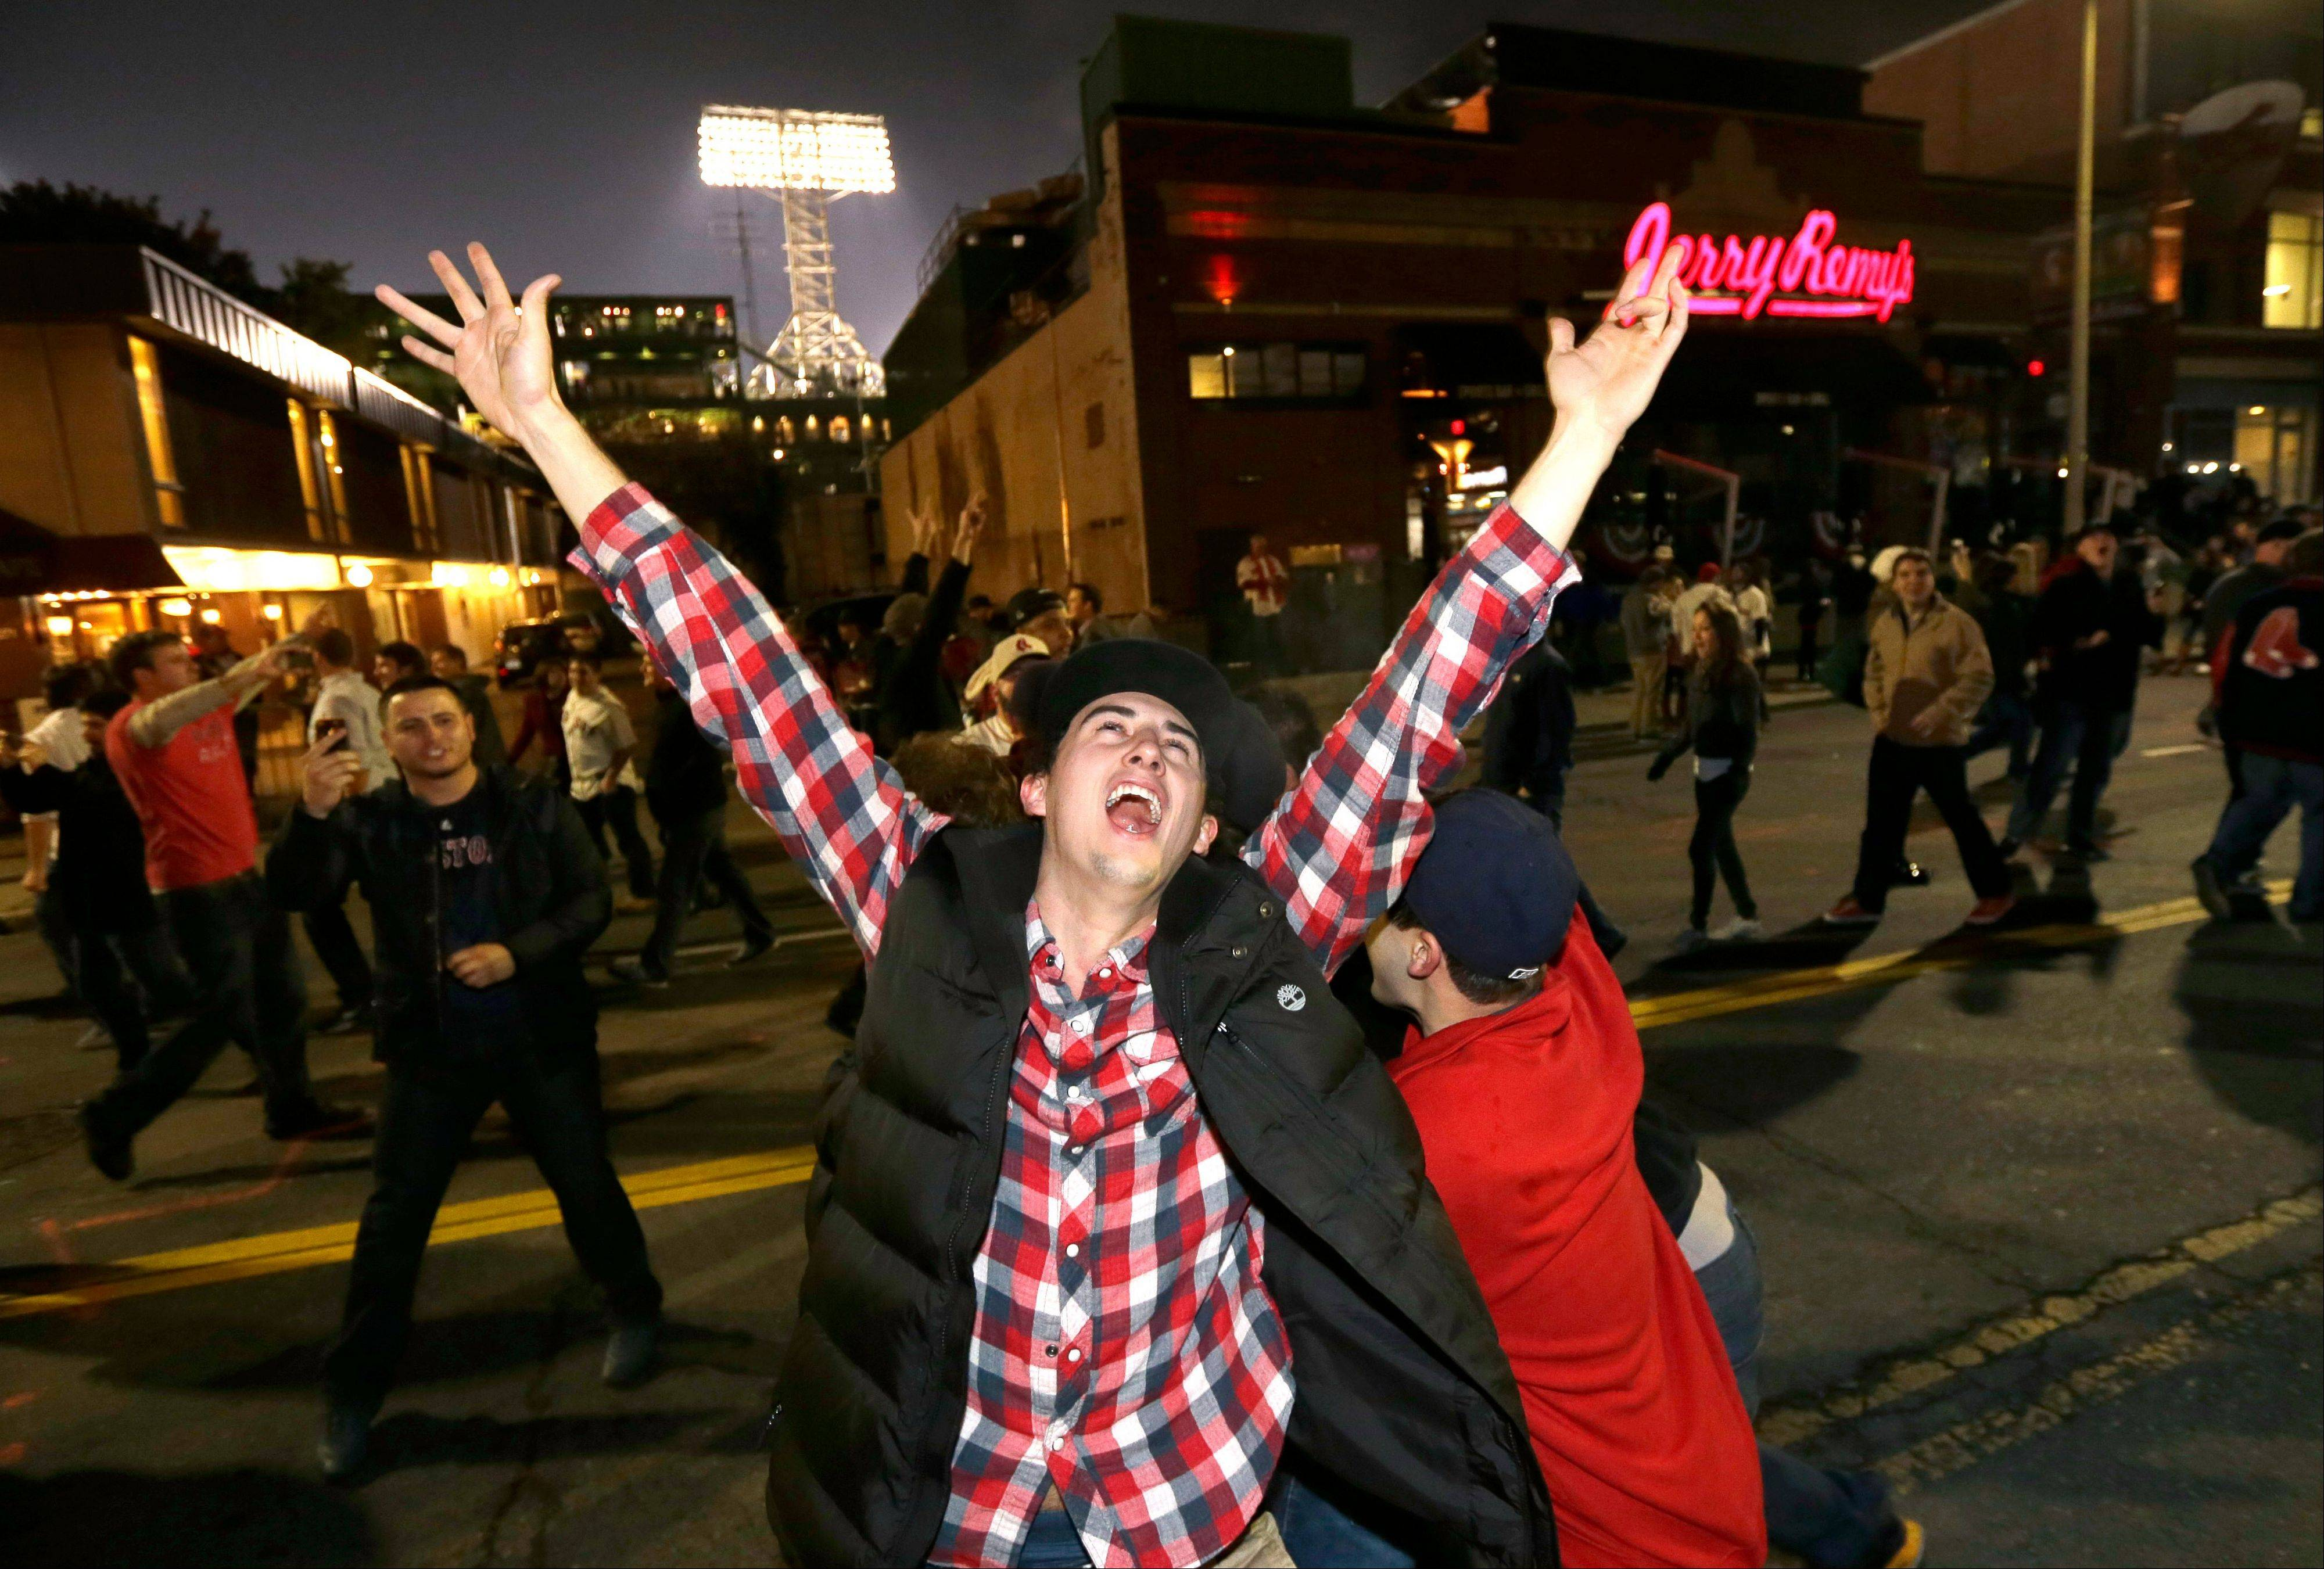 Boston Red Sox fans celebrate in the street near Fenway Park on Wednesday night after Game 6.